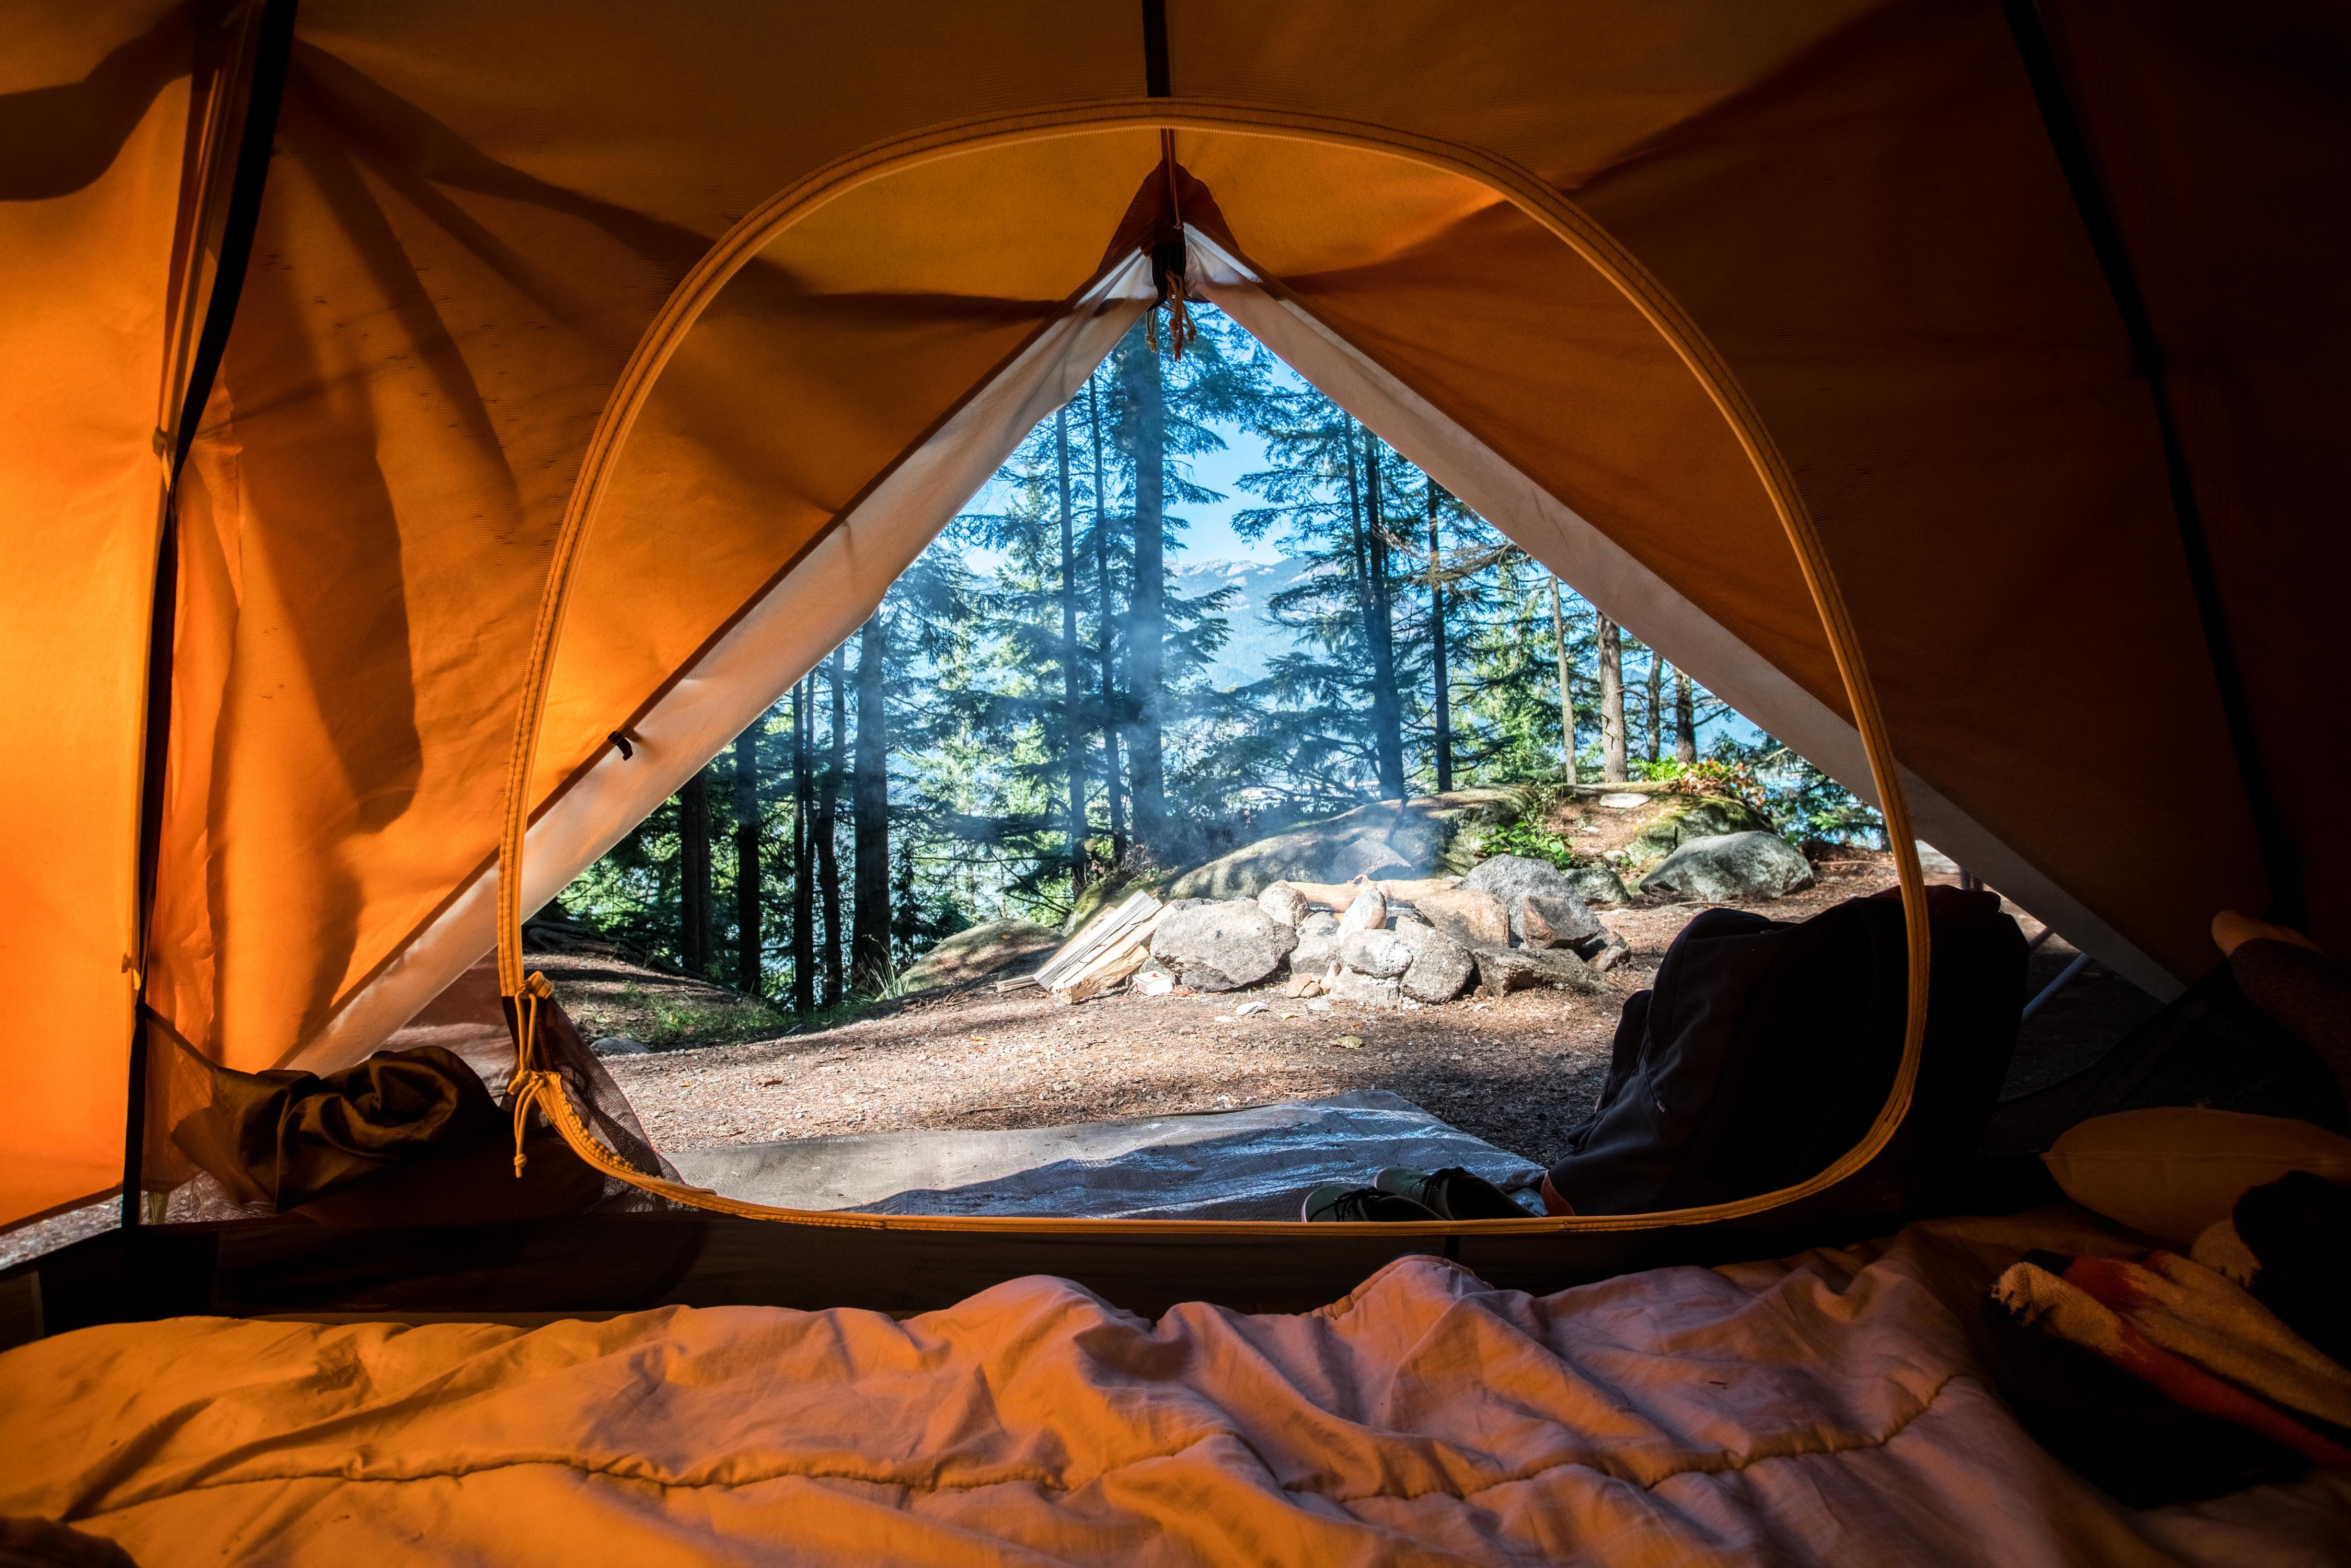 Is It Necessary For Me To Have A Tent Vestibule? & What Is A Tent Vestibule? | Outdoor Intensity